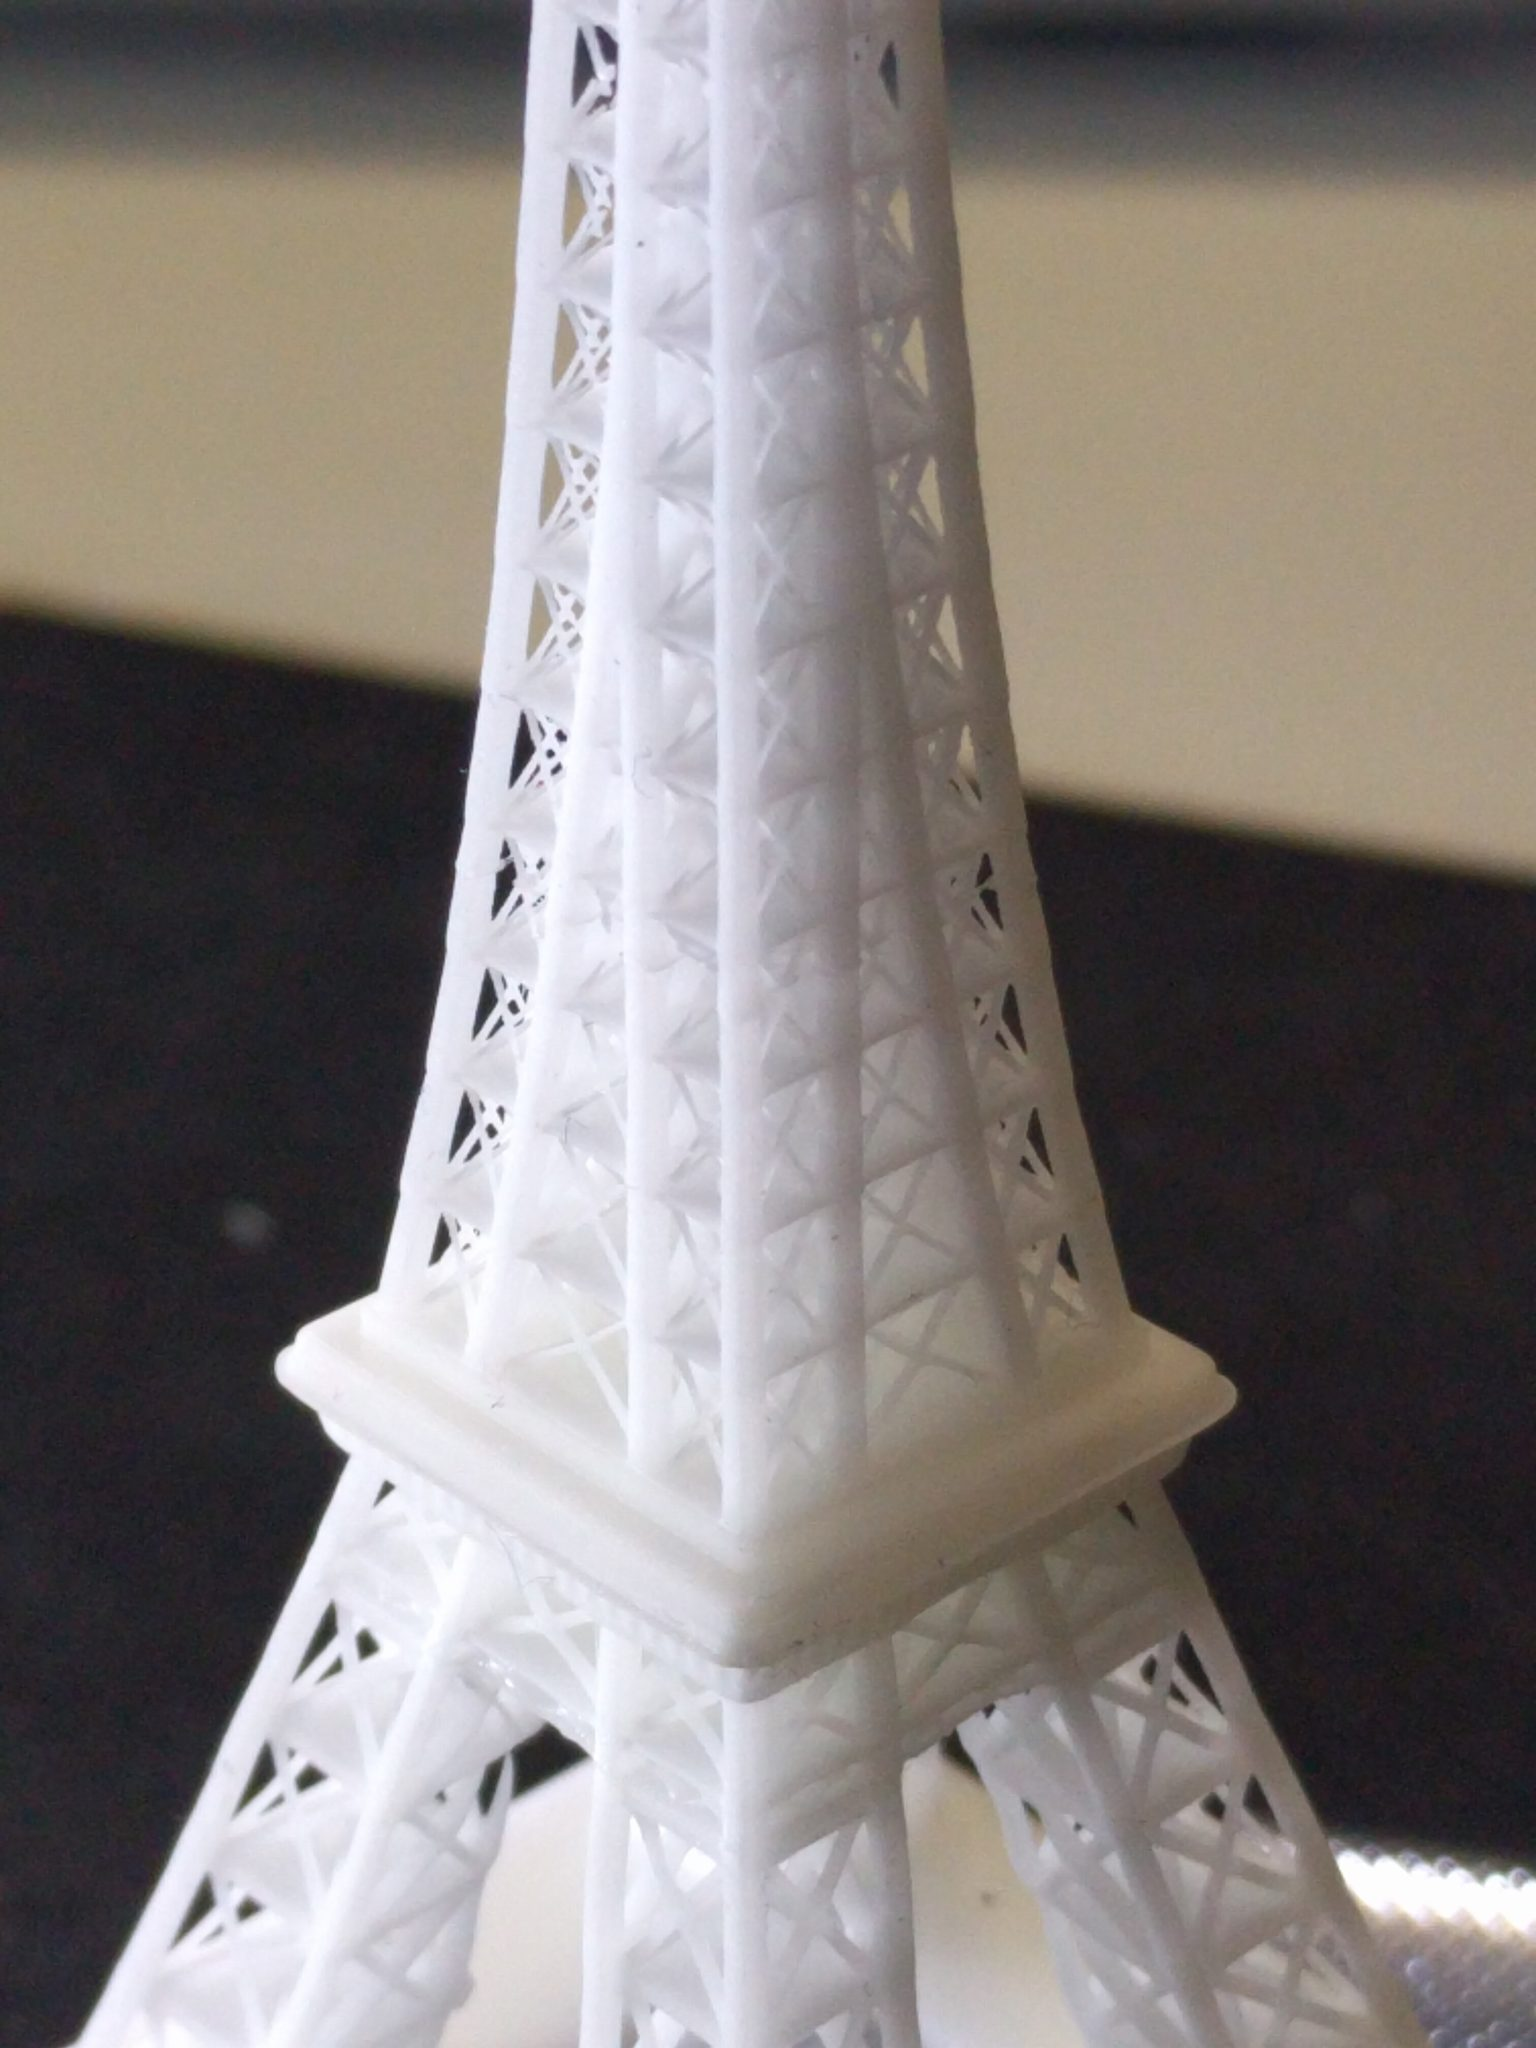 Eiffel tower - 100 micron - Wanhao D7